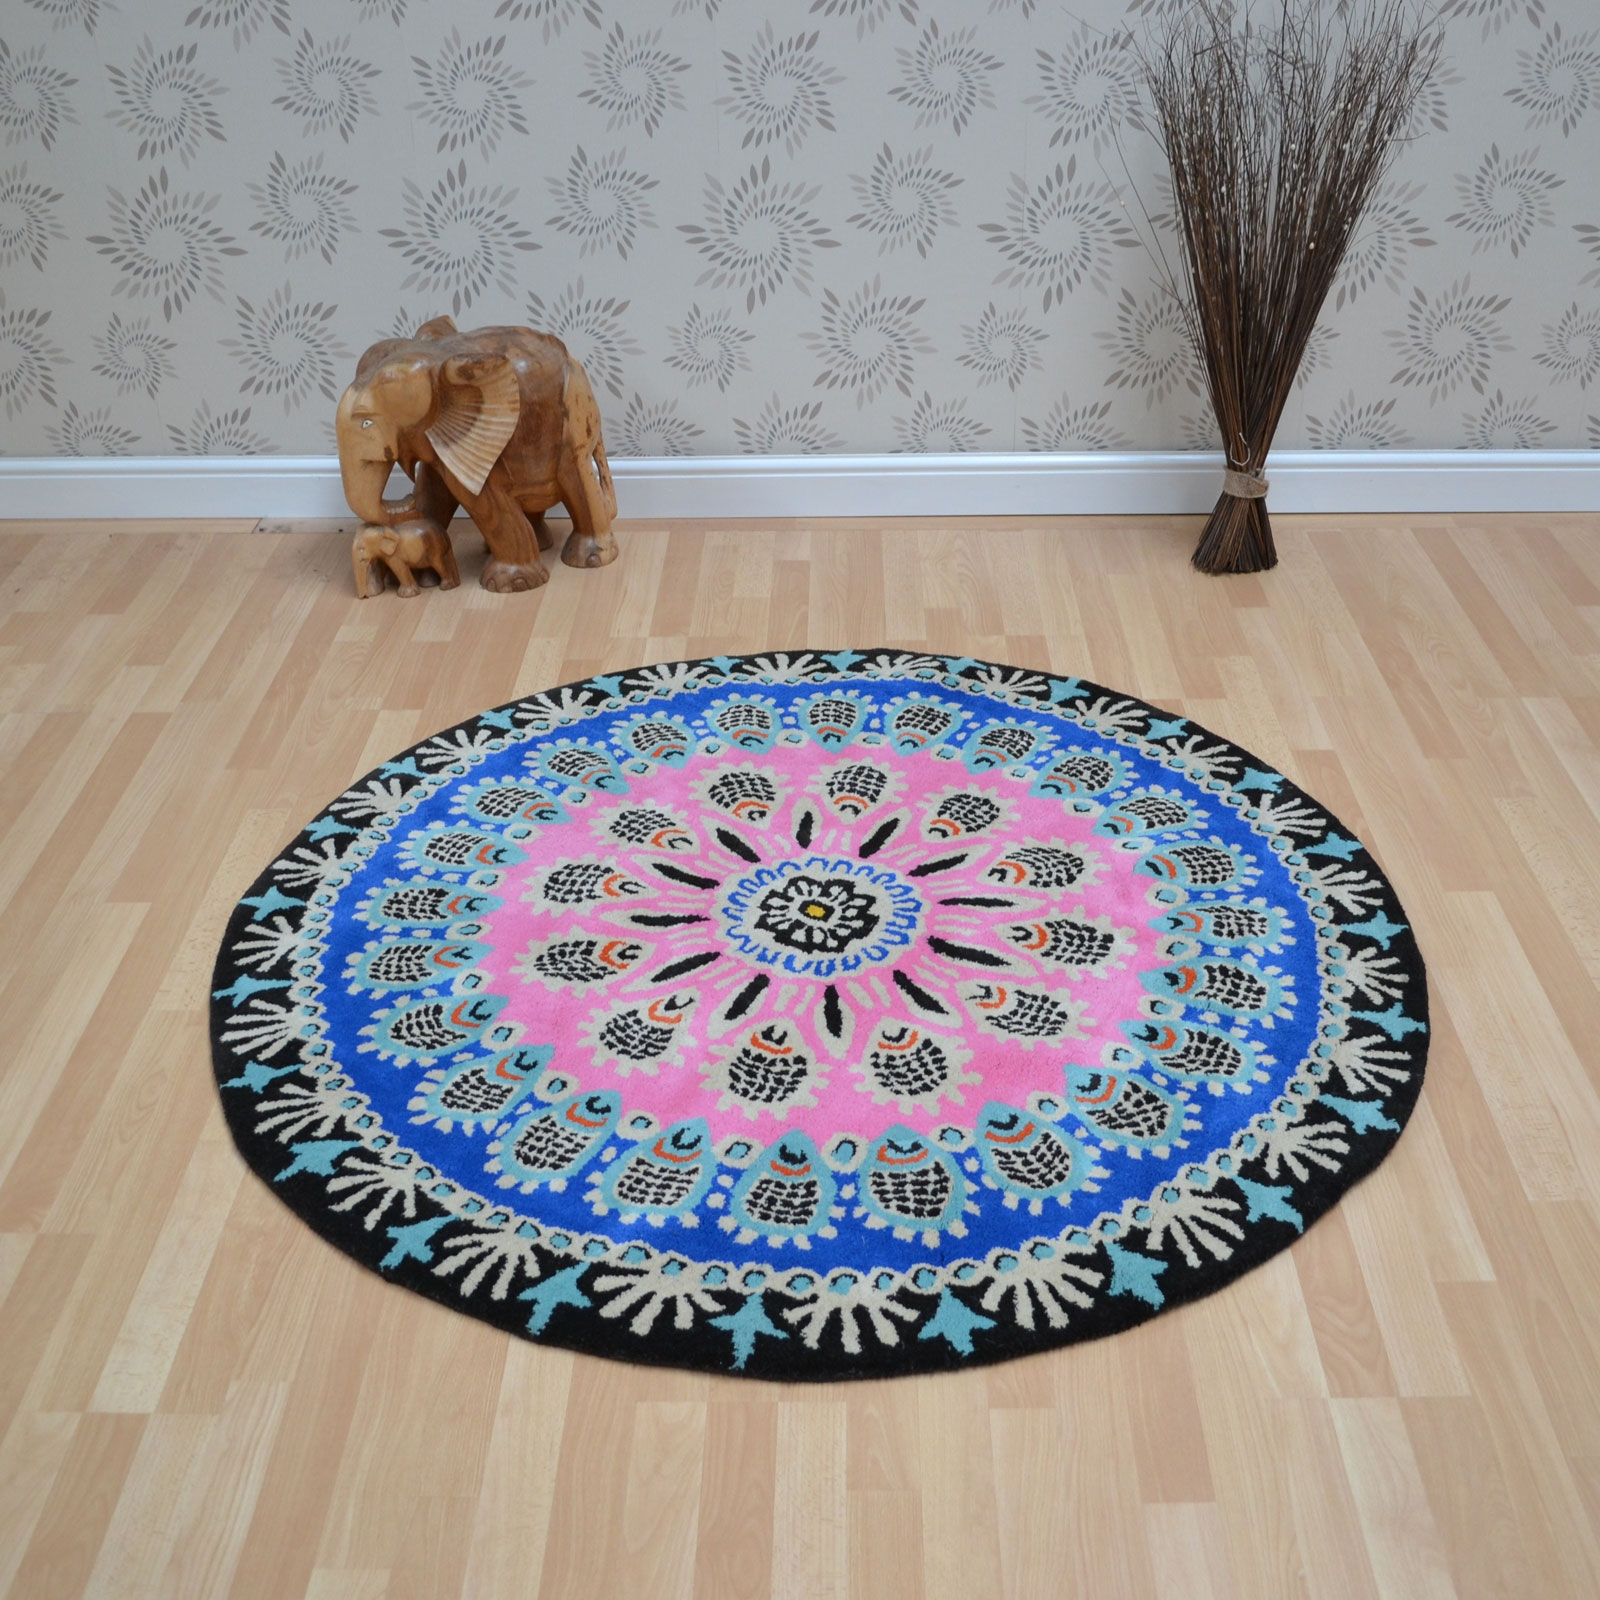 Circular Rugs Uk Roselawnlutheran Within Circular Rugs (View 13 of 15)